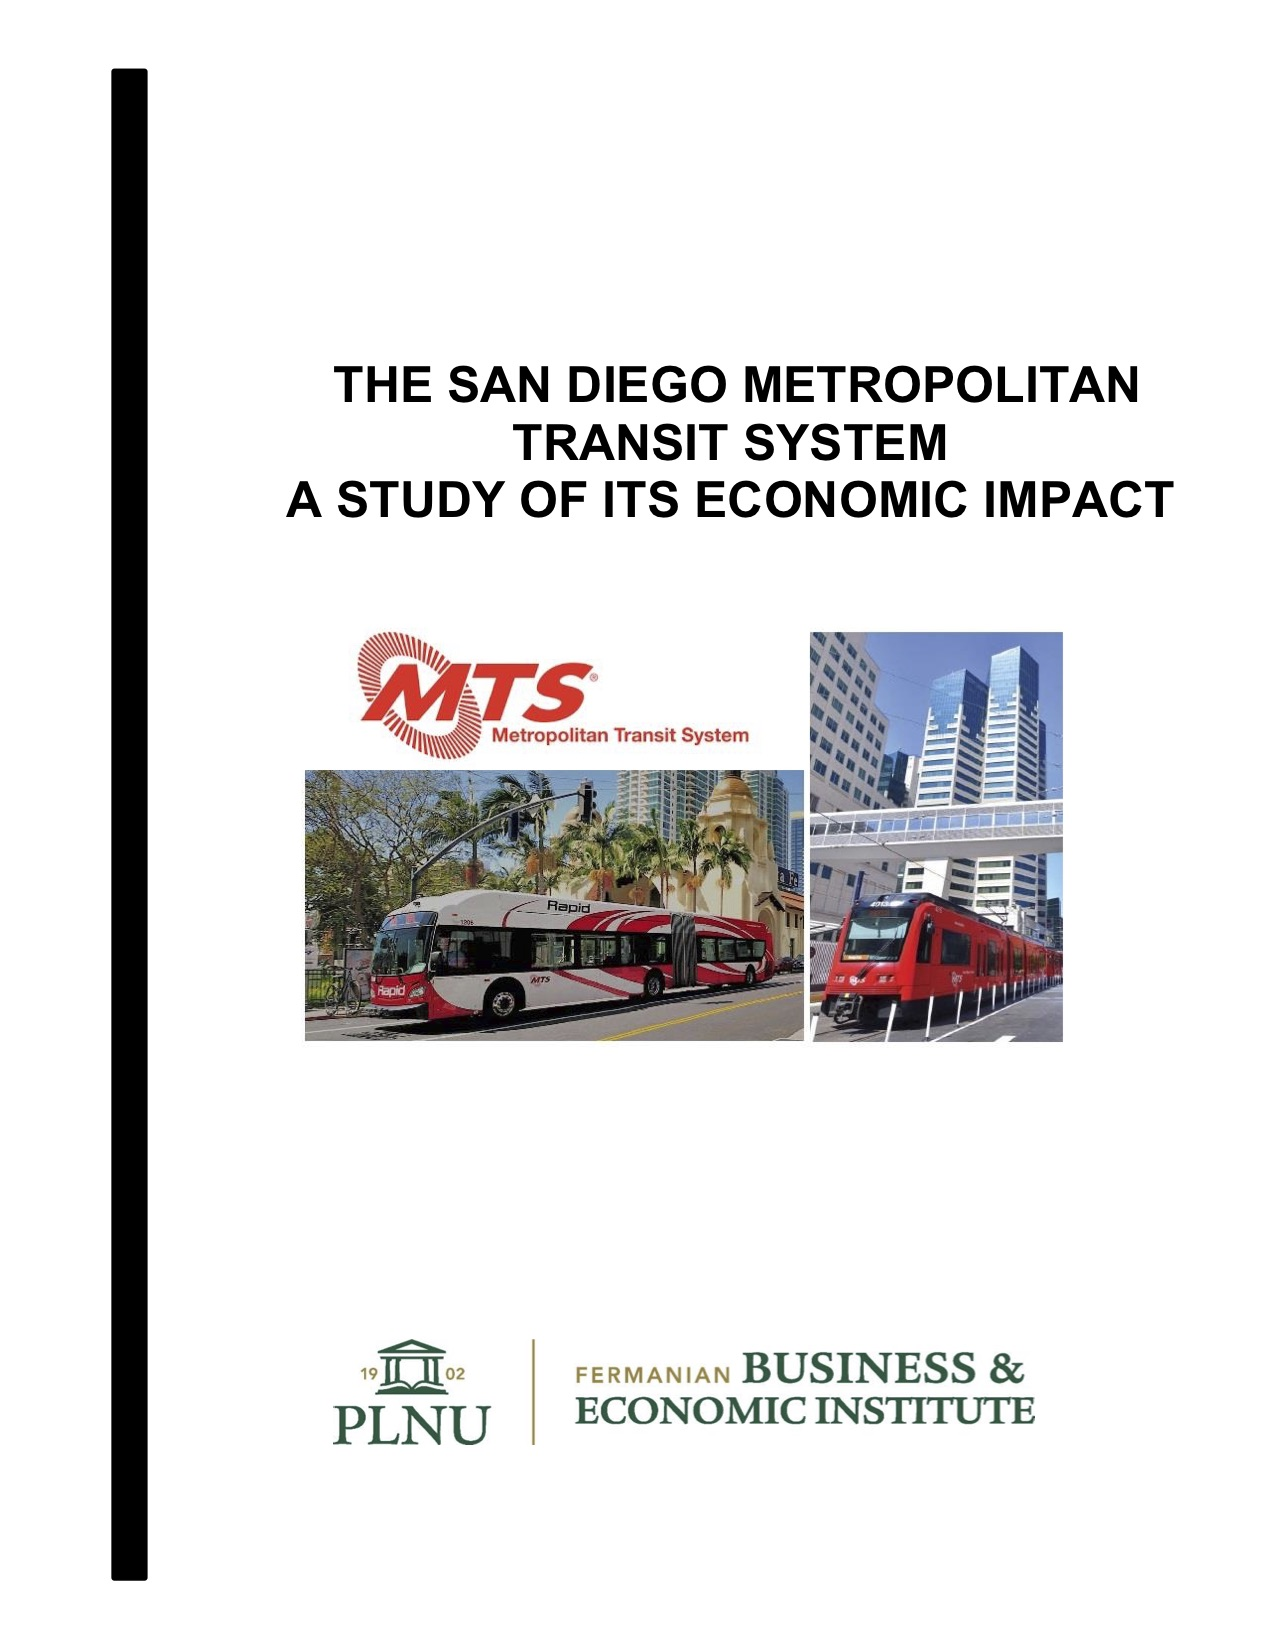 2019 - The San Diego Metropolitan Transit System: A Study of its Economic Impact